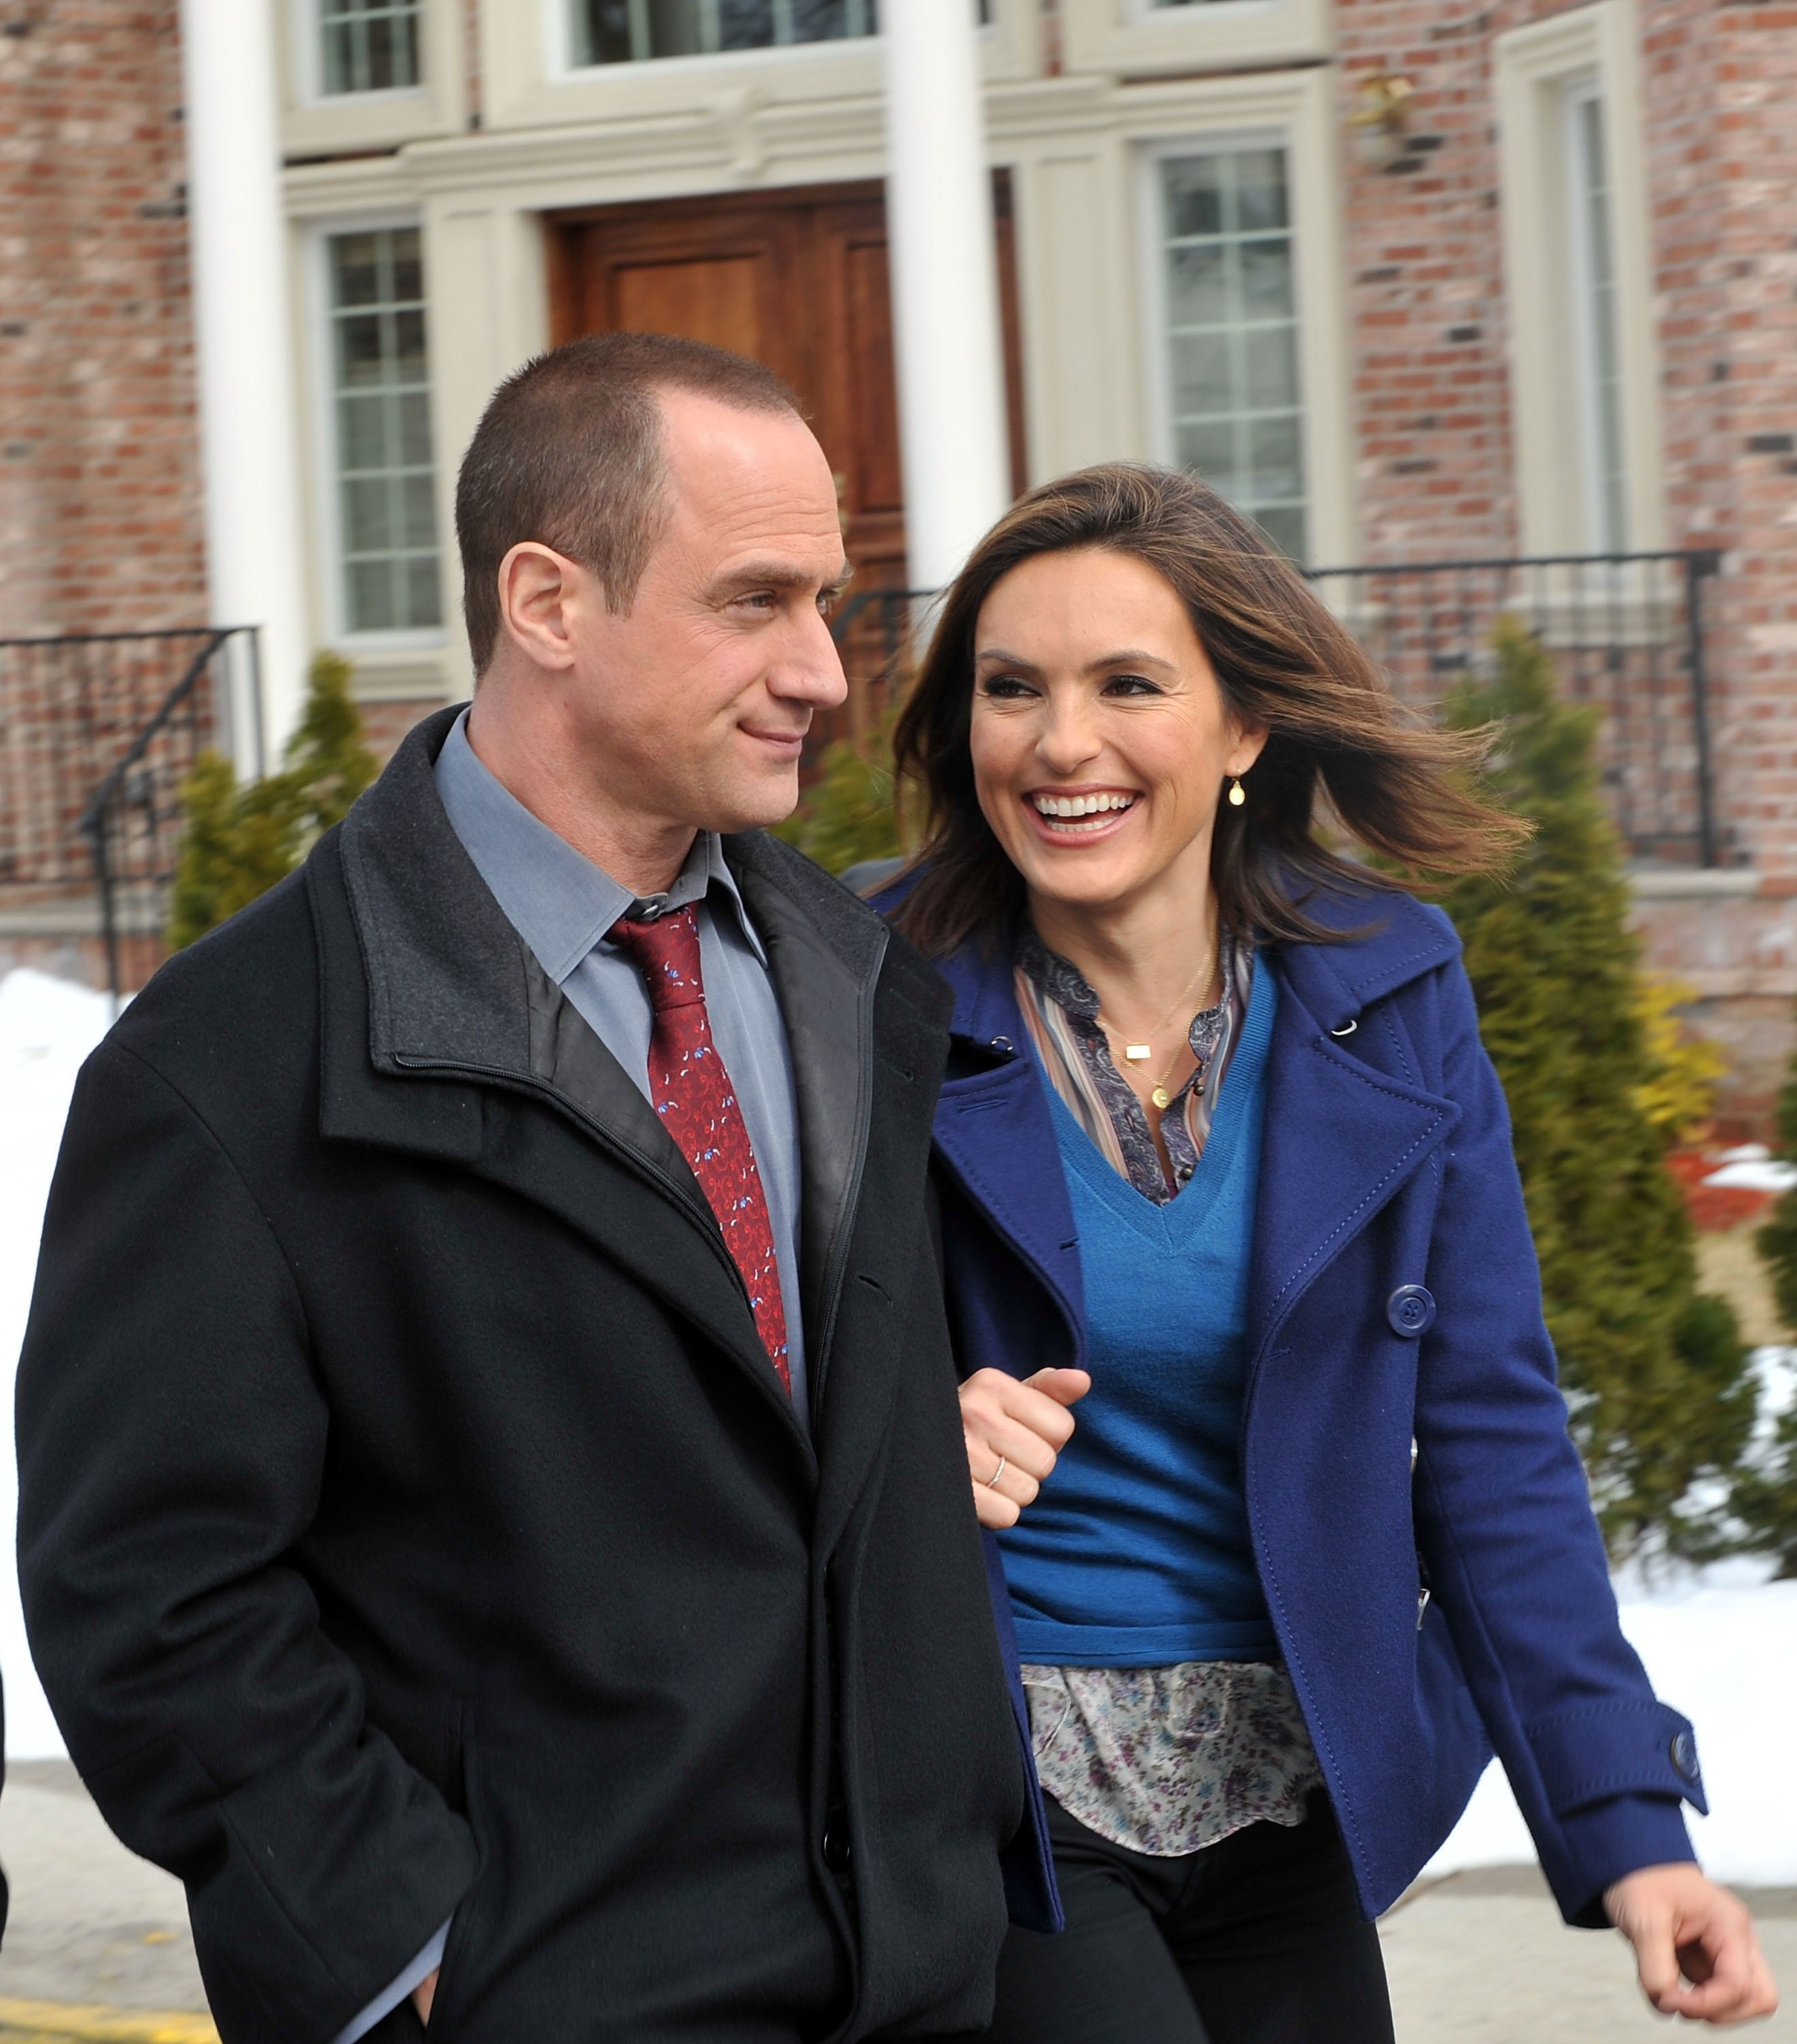 FORT LEE, NJ - MARCH 04:  Christopher Meloni and Mariska Hargitay on location for 'Law & Order: SVU' on the streets of Fort Lee, NJ on March 4, 2010 in Fort Lee City.  (Photo by Bobby Bank/WireImage)